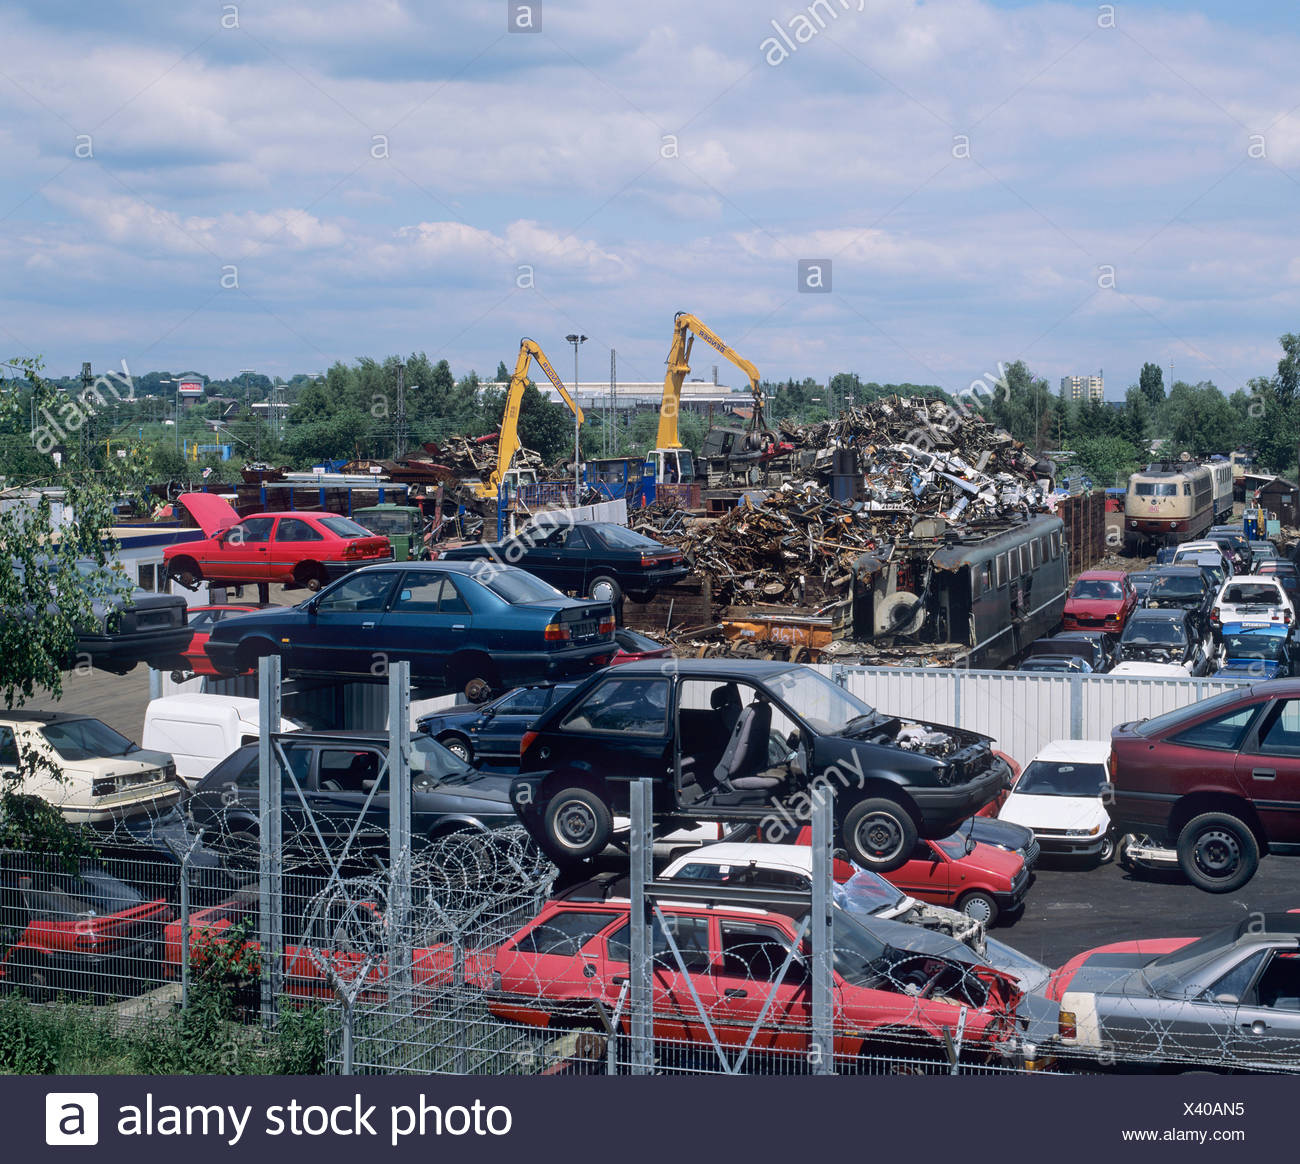 View of a scrap metal collection point, car chassis, pile of metal rubbish Stock Photo